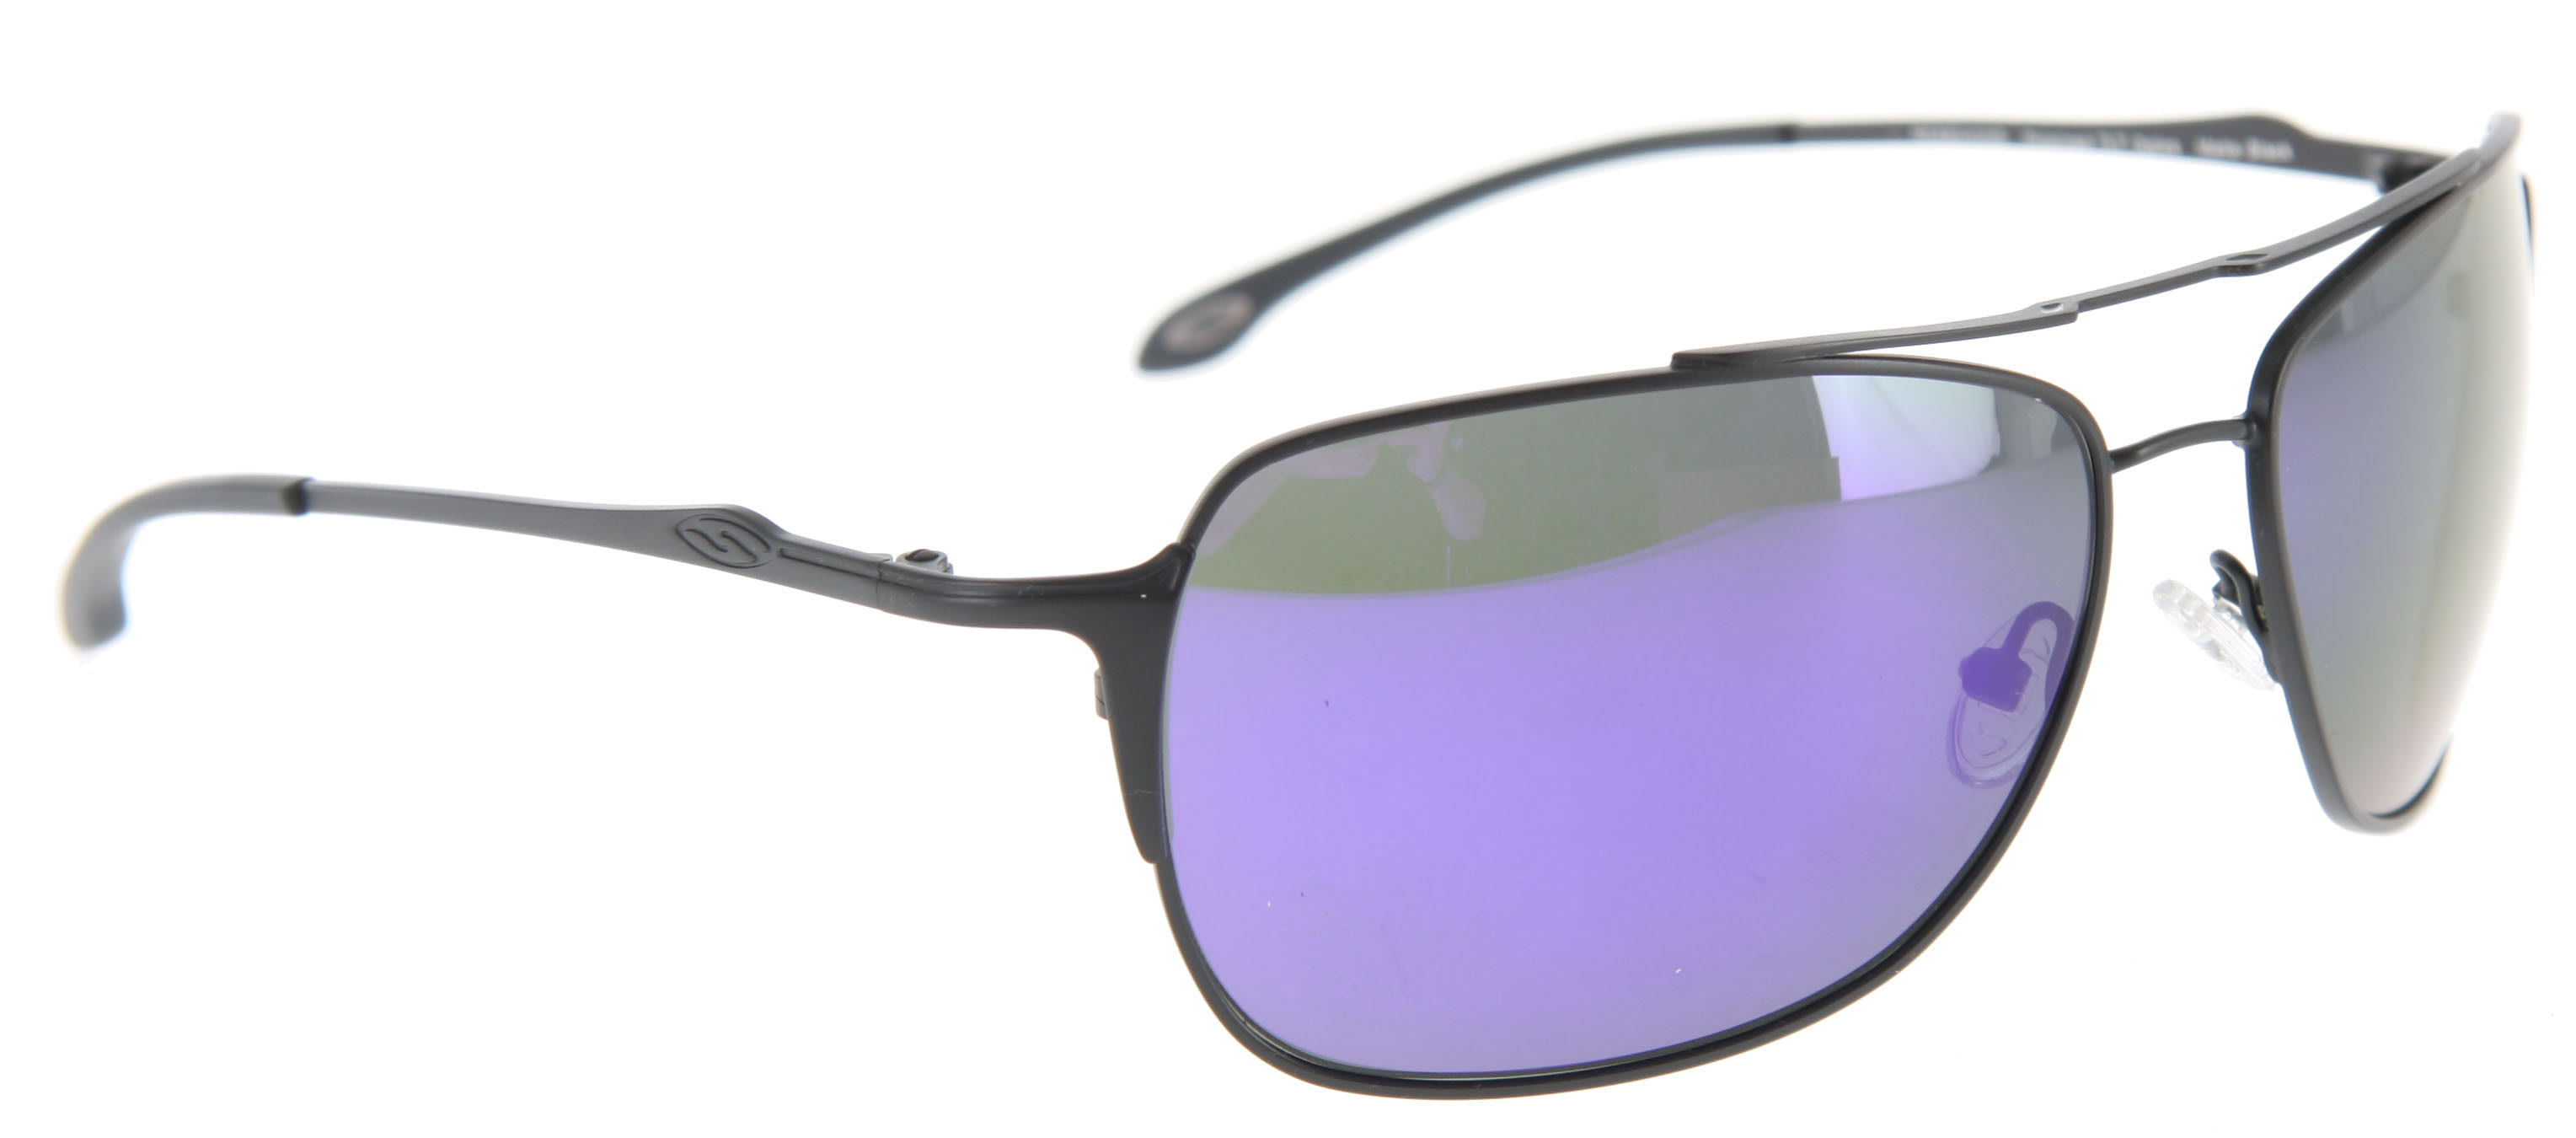 Smith Rosewood Sunglasses Matte Black/Polarized Deep Purple Mirror Lens